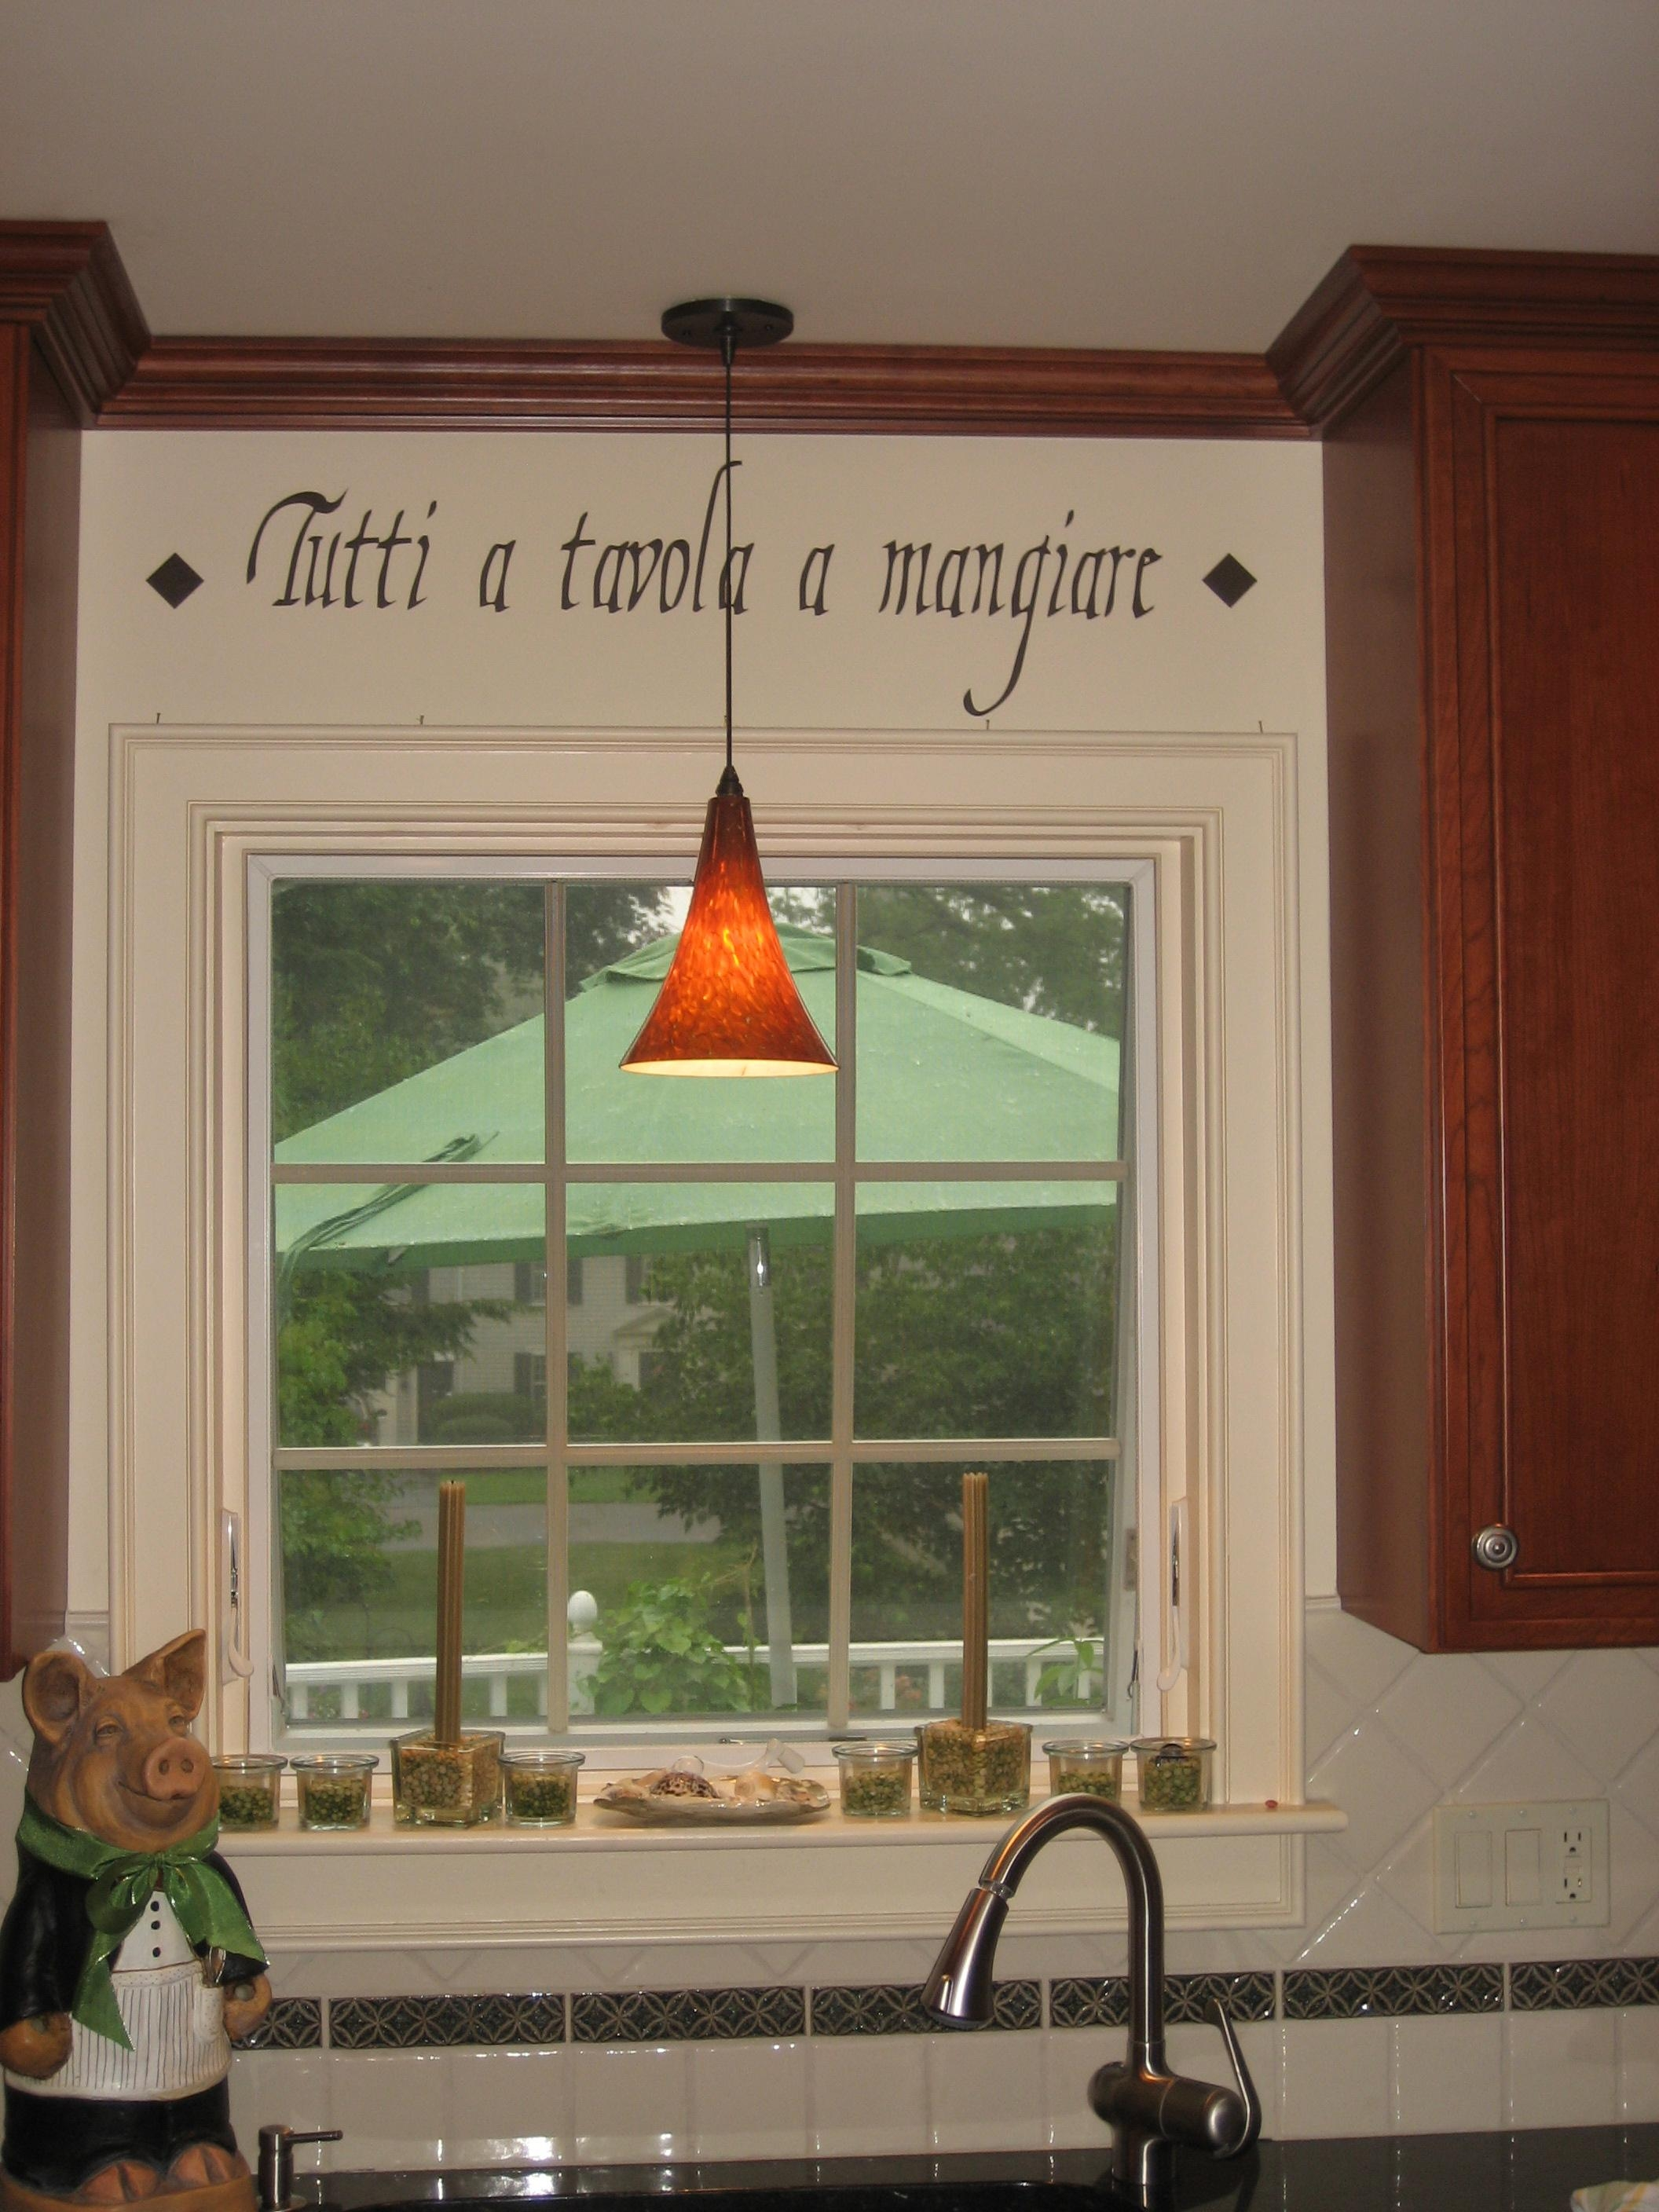 Italian Wall Art For Kitchen | Dzqxh Pertaining To Italian Phrases Wall Art (View 2 of 20)